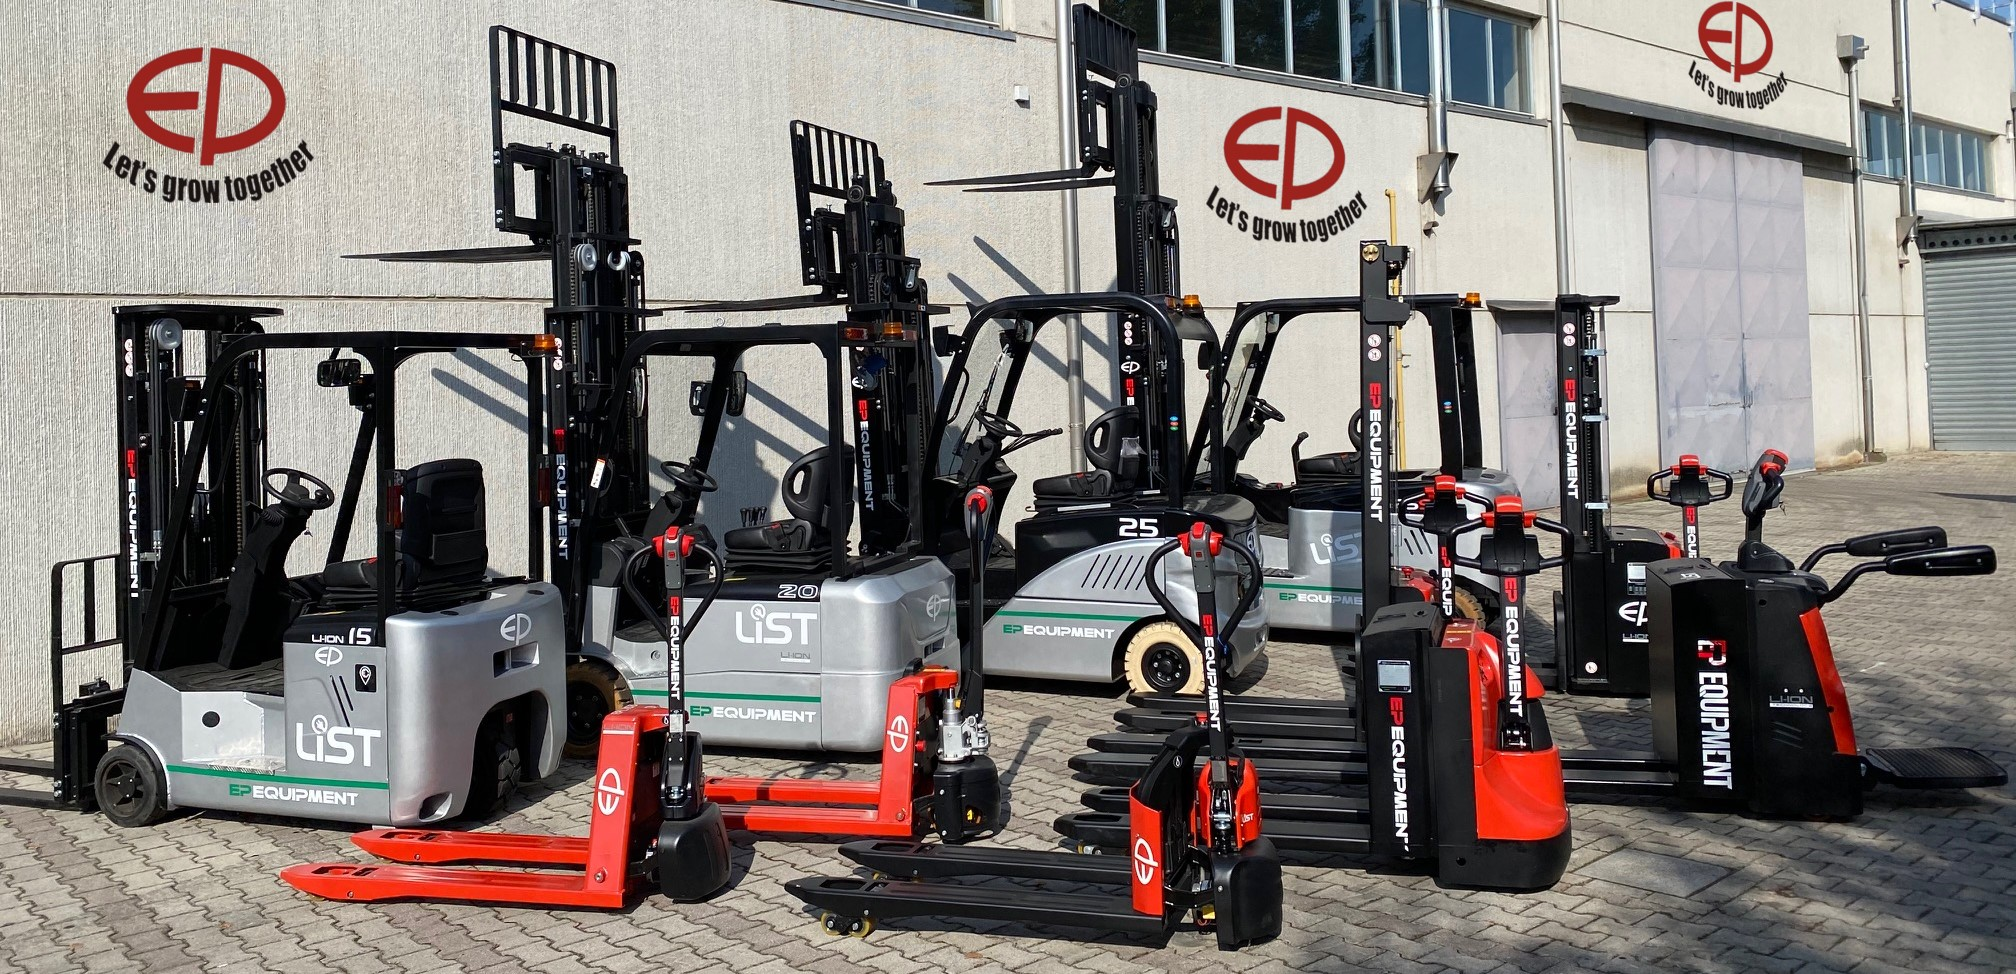 EP's trusted Italian distributor KFE on EP Equipment and its place in the Italian market.